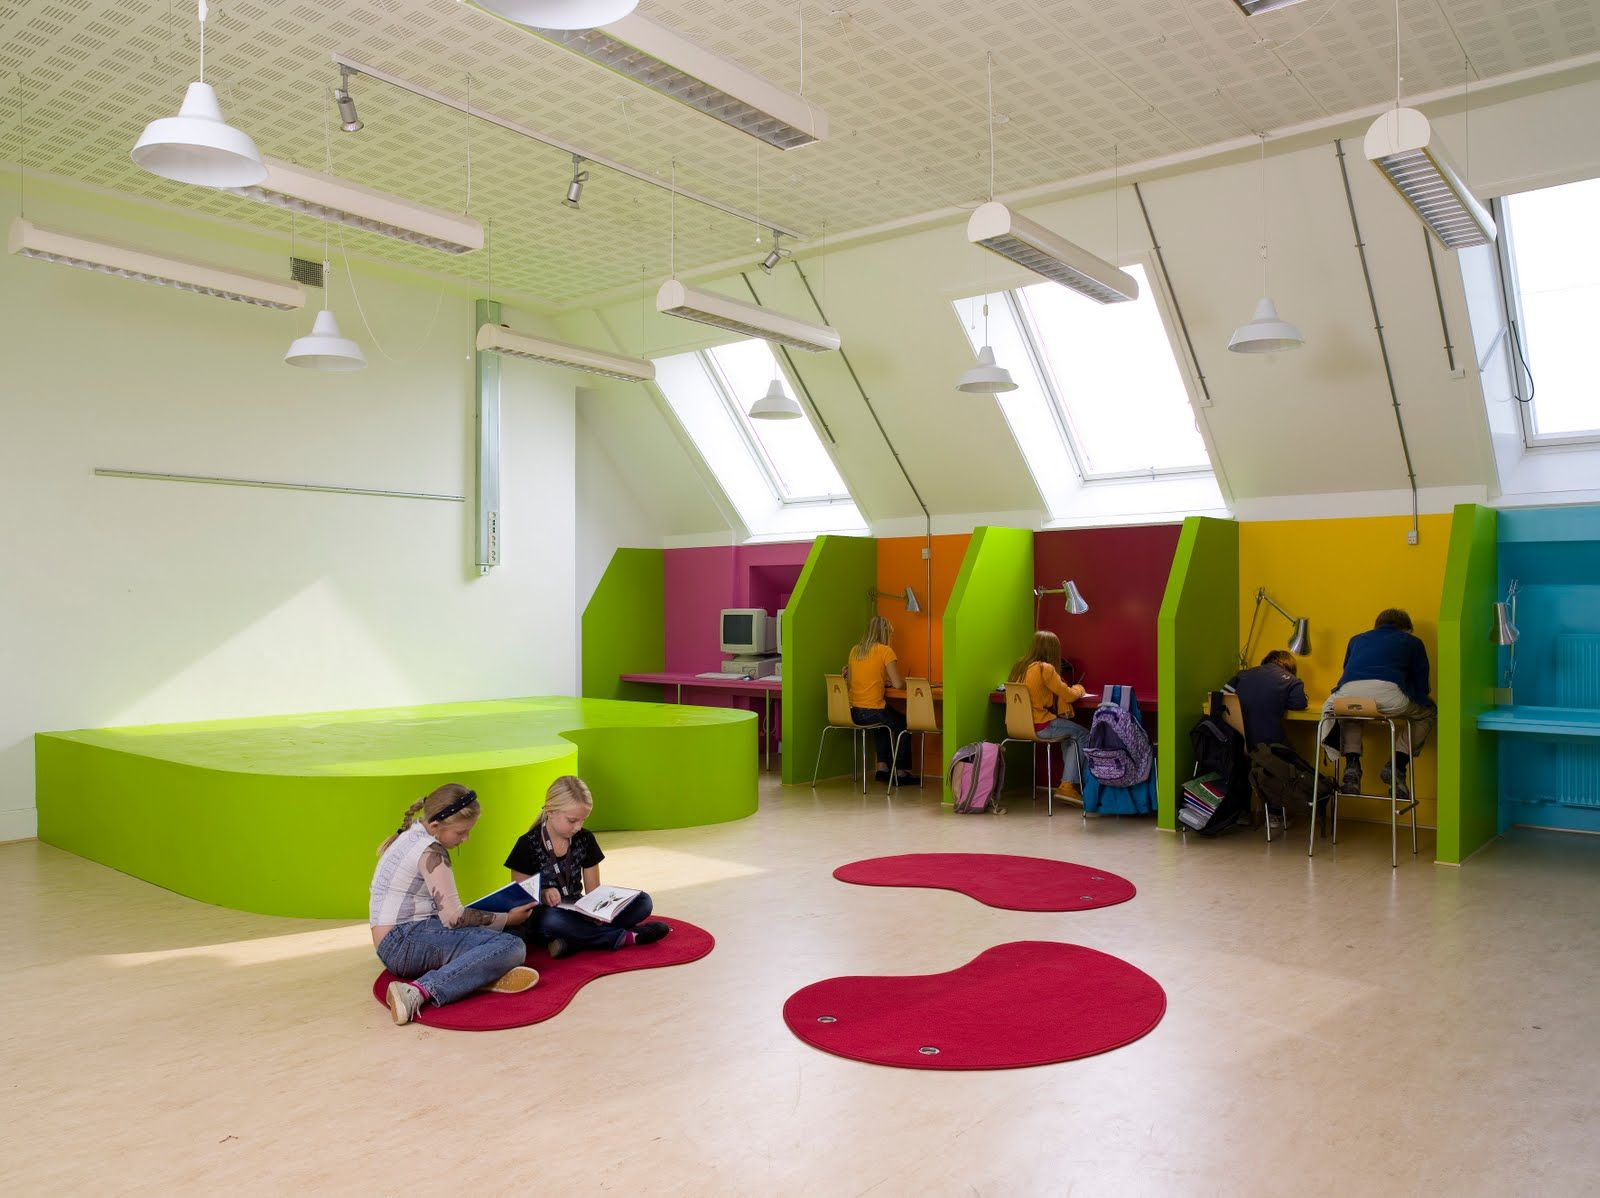 Escuela Ordrup Ordrup School Archkids Arquitectura Para Ni Os Architecture For Kids